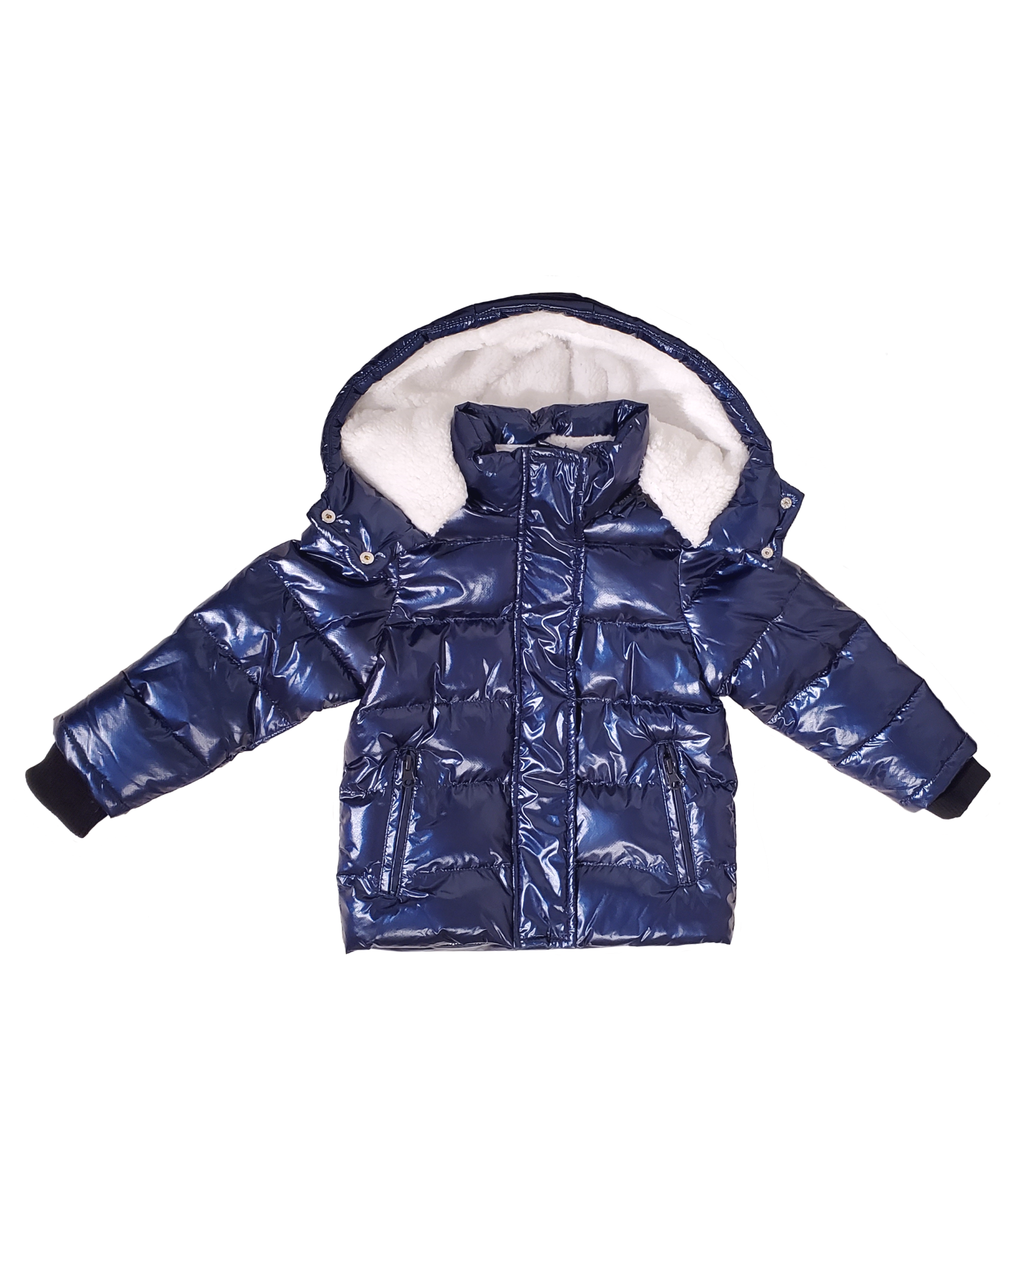 Winter Jacket - Metallic Blue